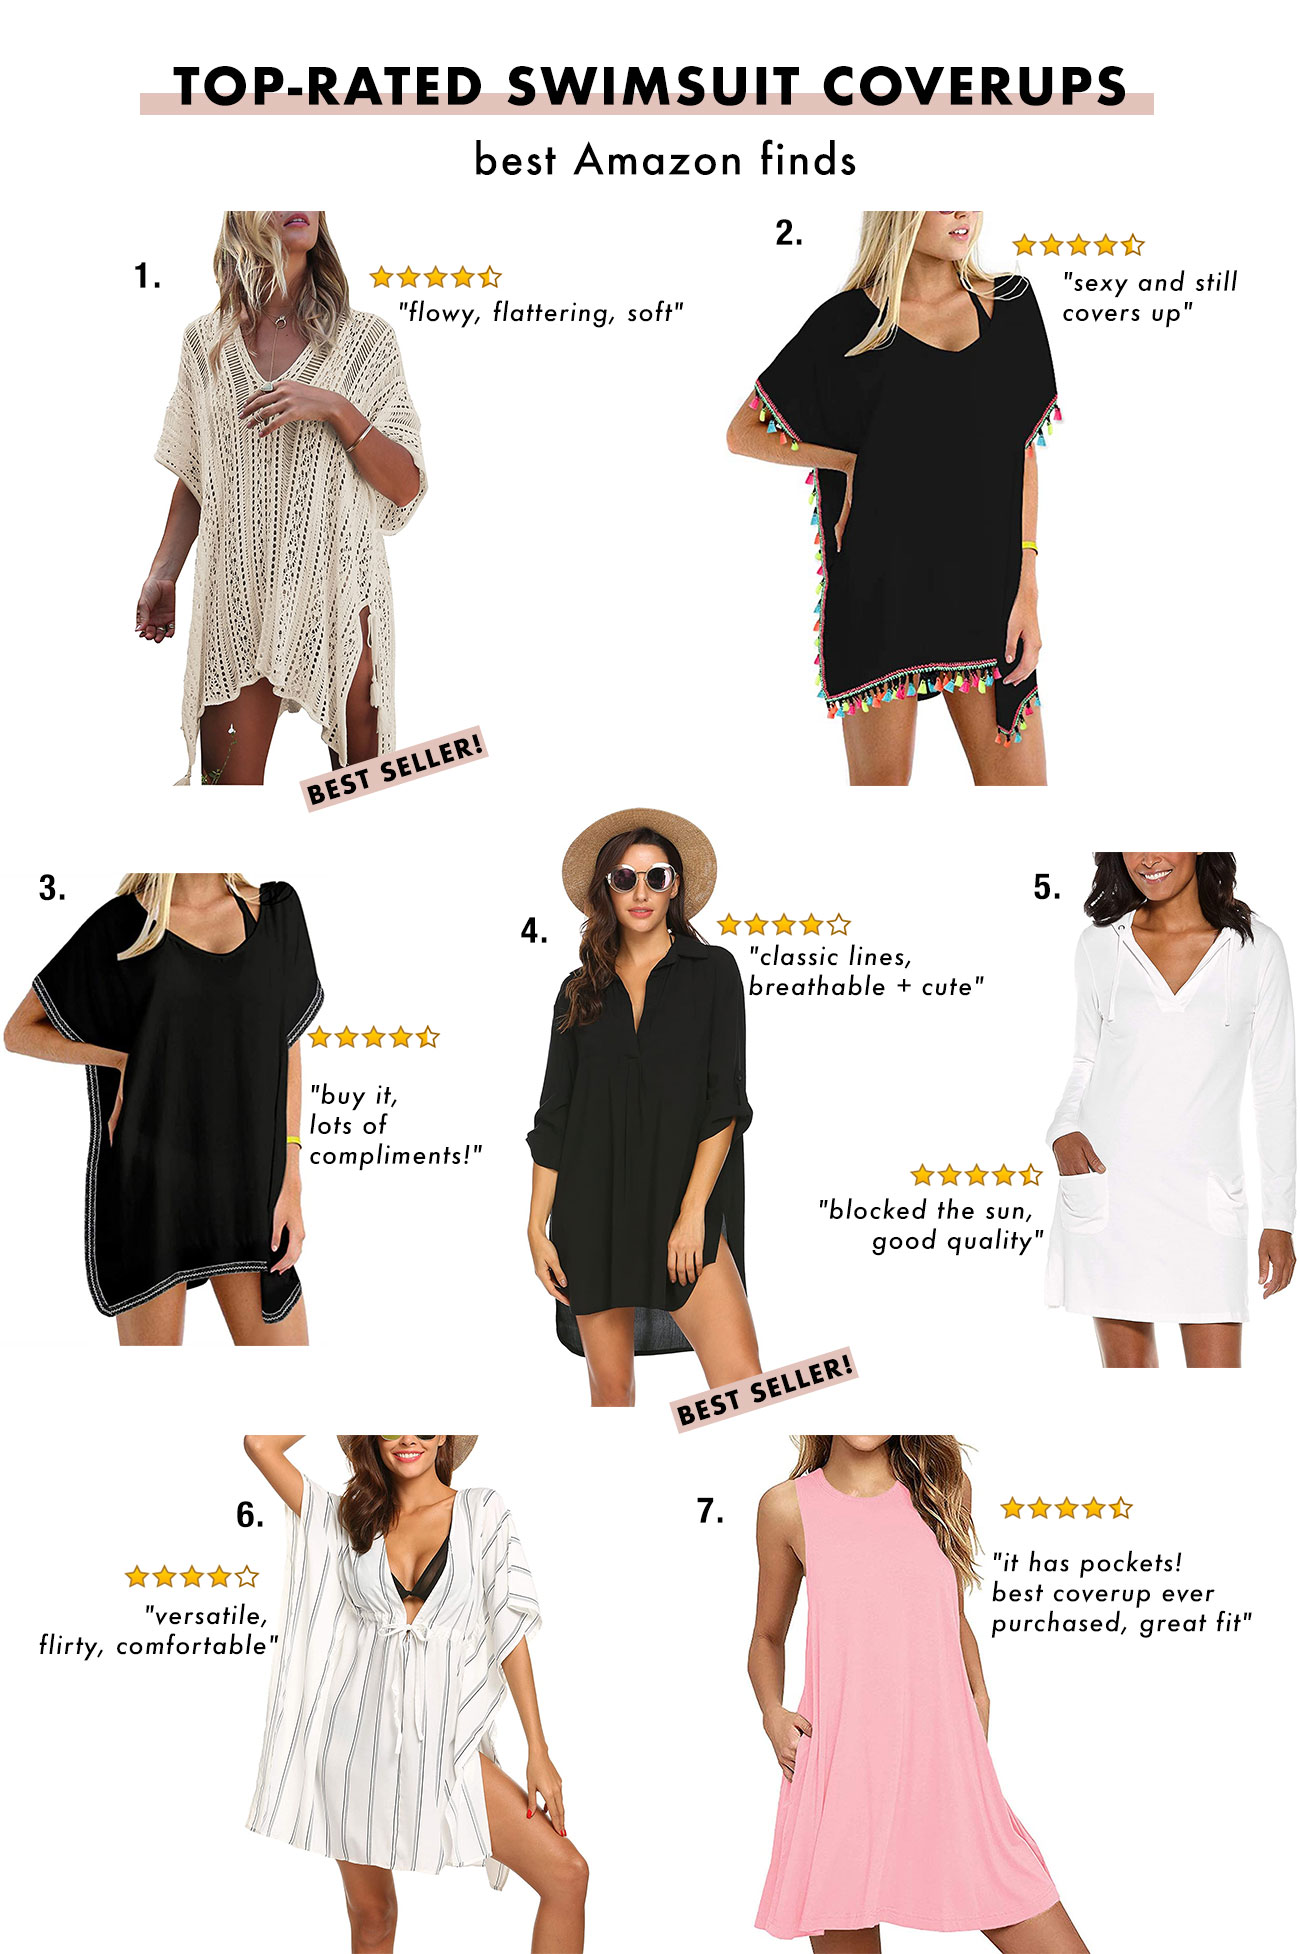 """Best swimsuit coverups at Amazon """"width ="""" 1300 """"height ="""" 1954 """"data-pin-title ="""" Best swimsuit coverups at Amazon """"data-pin-description ="""" We found the best rated swimsuit coverups at Amazon ! """"Srcset ="""" https://greenweddingshoes.com/wp-content/uploads/2020/07/Amazon-swimsuits-1.jpg 1300w, https://i0.wp.com/greenweddingshoes.com/wp-content/uploads / 2020/07 / Amazon swimsuits-1.jpg? Resize = 200.300 200w, https://i0.wp.com/greenweddingshoes.com/wp-content/uploads/2020/07/Amazon-swimsuits-1.jpg?resize=681, 1024 681w, https: // i0. wp.com/greenweddingshoes.com/wp-content/uploads/2020/07/Amazon-swimsuits-1.jpg?resize=768,1154 768w, https: //i0.wp .com / greenweddingshoes.com / wp-content / uploads / 2020/07 / Amazon swimsuits-1.jpg? resize = 337.506 337w, https://i0.wp.com/greenweddingshoes.com/wp-content/uploads/ 2020/07 / Amazon-Badeanzüge-1.jpg? Resize = 800.1202 800w, https://i0.wp.com/greenweddingshoes.com/wp-content/uploads/2020/07/Amazon-swimsuits-1.jpg? resize = 400,601 400w, https://i0.wp.com/greenweddingshoes.com/wp-content /uploads/2020/07/Amazon-swimsuits-1.jpg?resize=1022,1536 1022w, https: // i0. wp.com/greenweddingshoes.com/wp-content/uploads/2020/07/Amazon-swimsuits- 1.jpg? Resize = 300,451 300w """"sizes ="""" (maximum width: 1300px) 100vw, 1300px """"/> 1st boho swimsuit cover up $ 19.99 // 2nd chiffon tassel swimsuit cover up $ 19.99 - $ 22.99 // 3rd chiffon fringe cover up $ 22.09 / / 4th Shirt Cover Up $ 17.99 - $ 25.99 // 5th Beach Cover Up Dress - Sunscreen $ 79.00 // 6. Oversized Striped Cover Up $ 19.99 - $ 26.99 // 7. Swing Dress Beach Cover Up $ 25.99 - $ 33.99</p> <p style="""